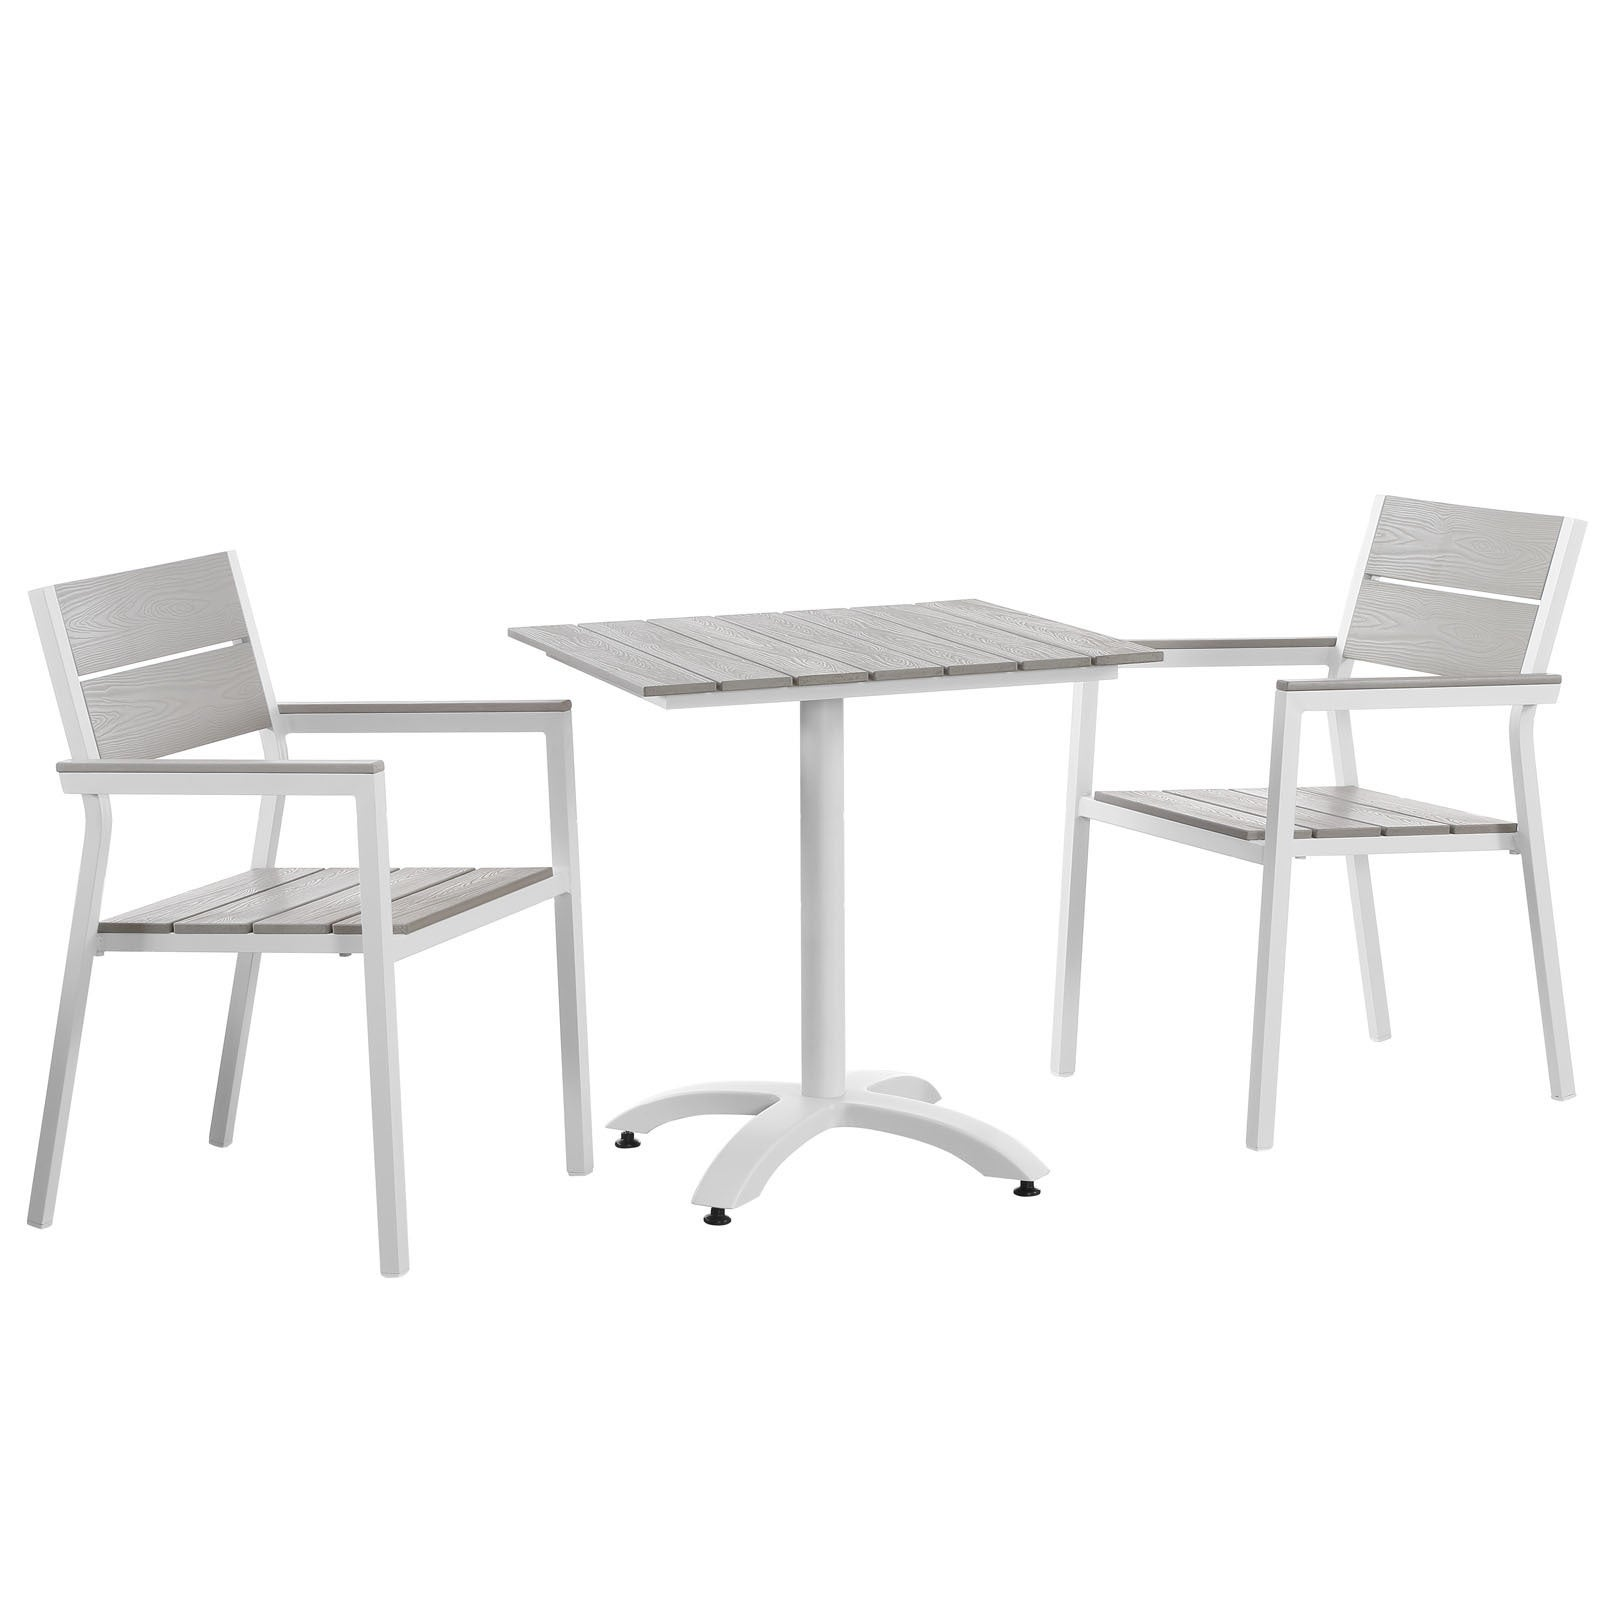 Modway Main 3-Piece Outdoor Patio Dining Set (White/Grey)...